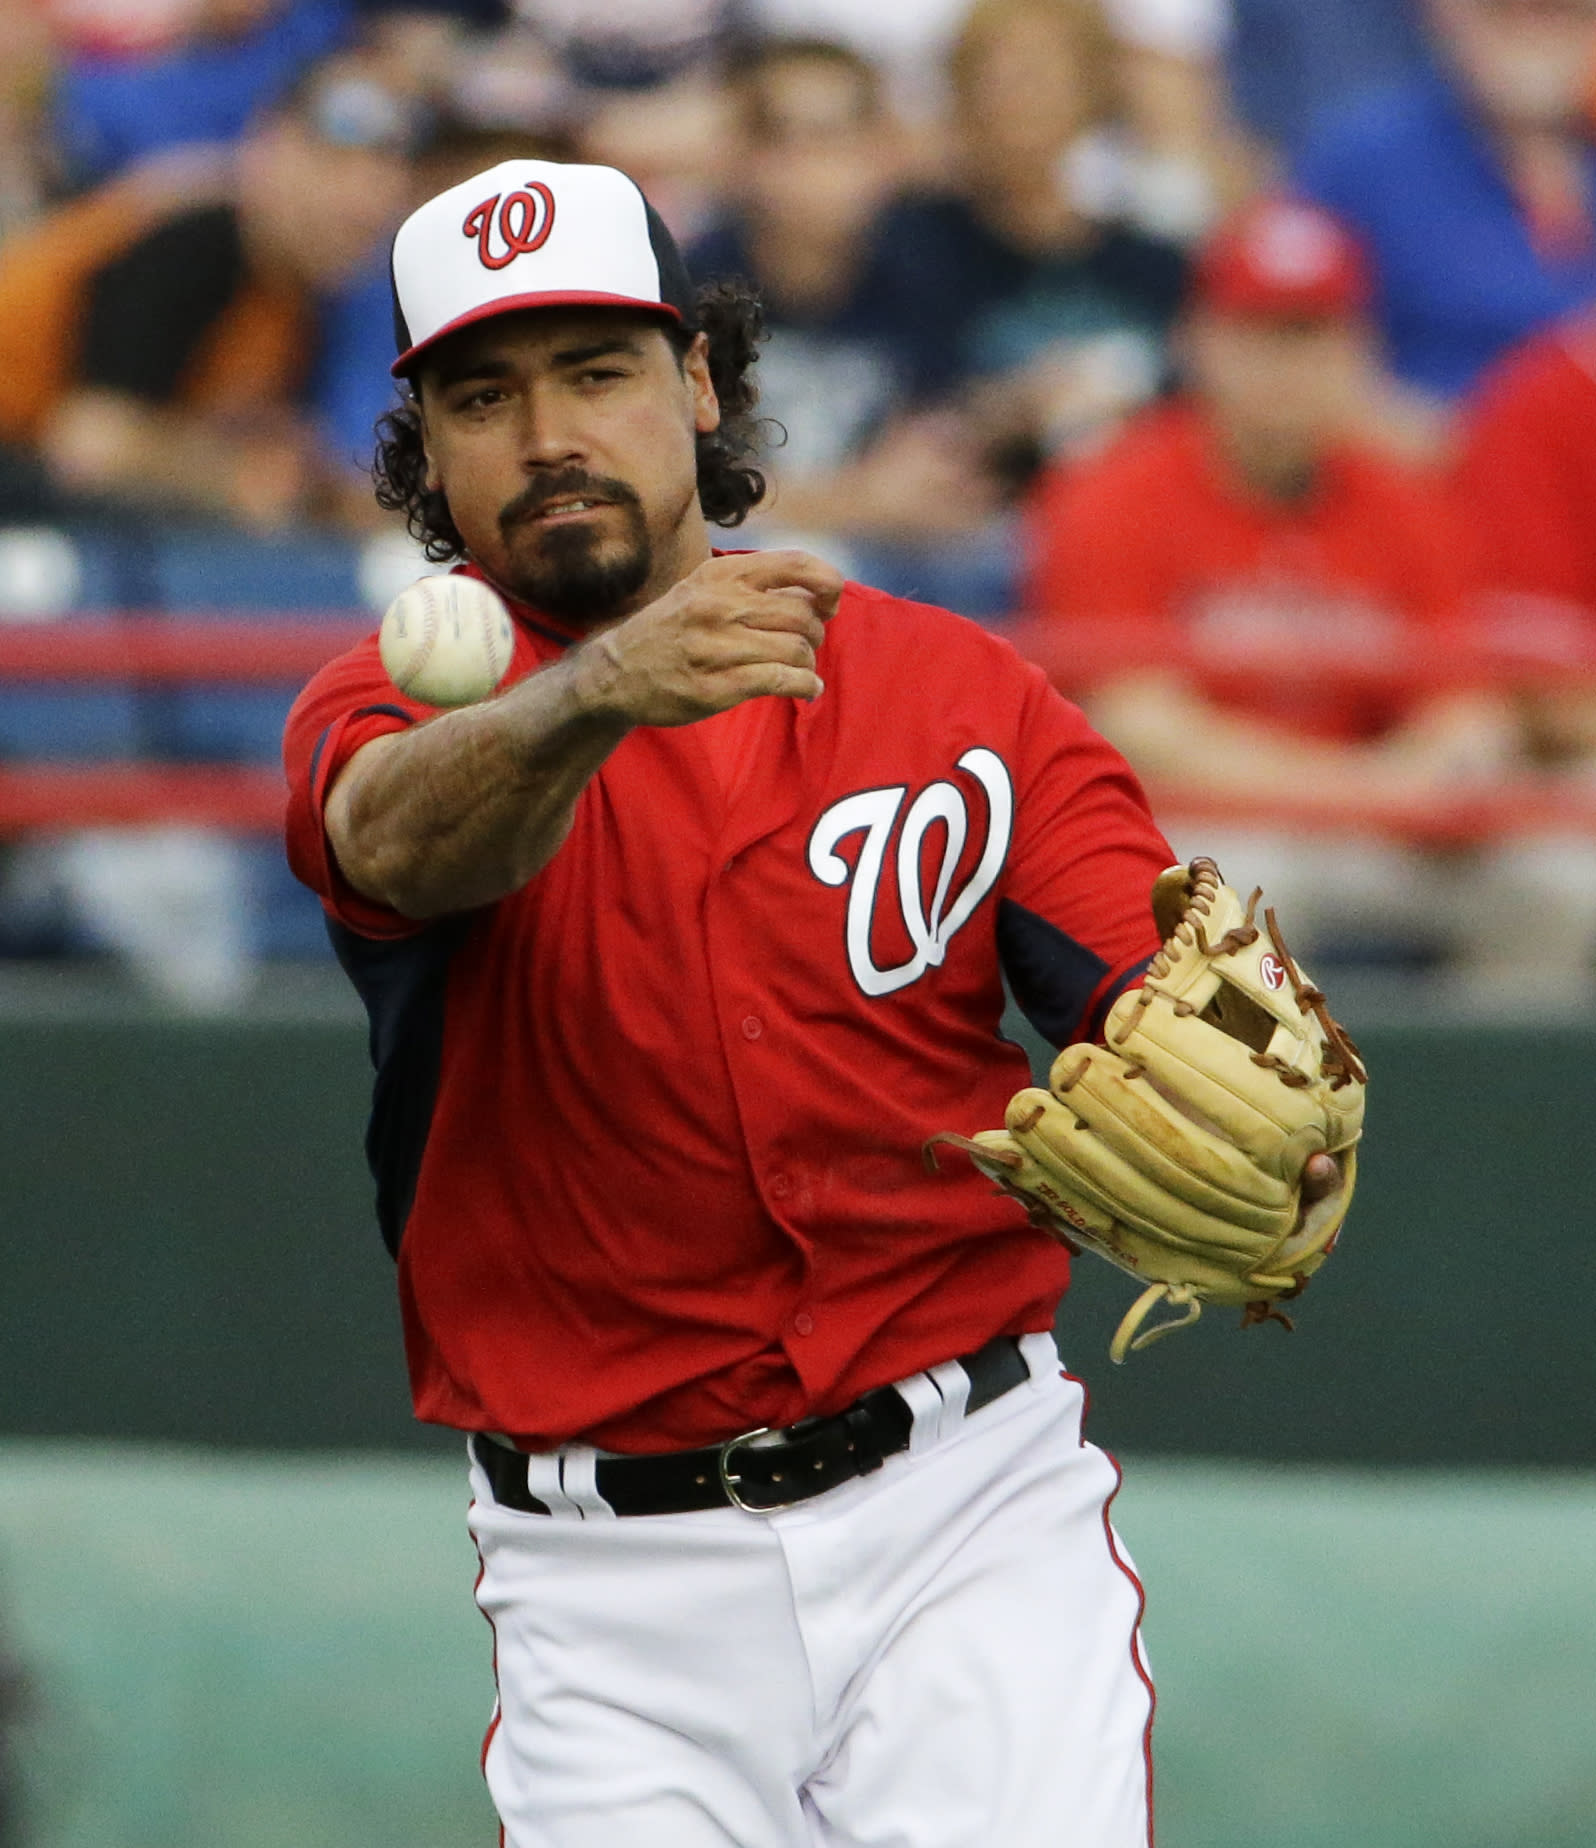 Nats' third baseman Rendon seeks 3rd opinion on knee